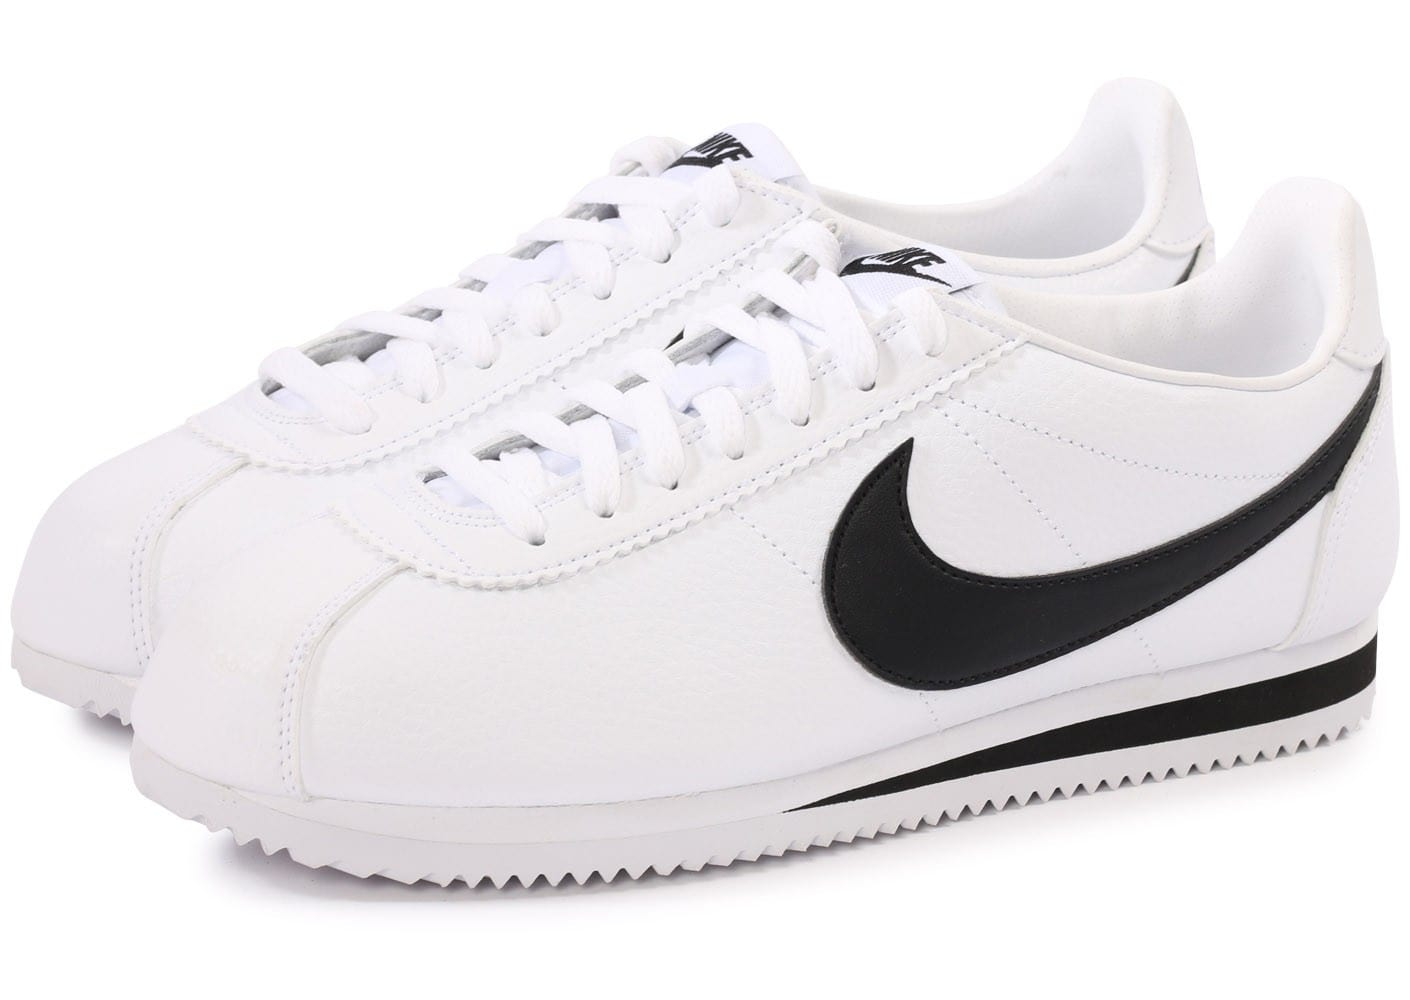 nike cortez leather blanc noir chaussures homme chausport. Black Bedroom Furniture Sets. Home Design Ideas